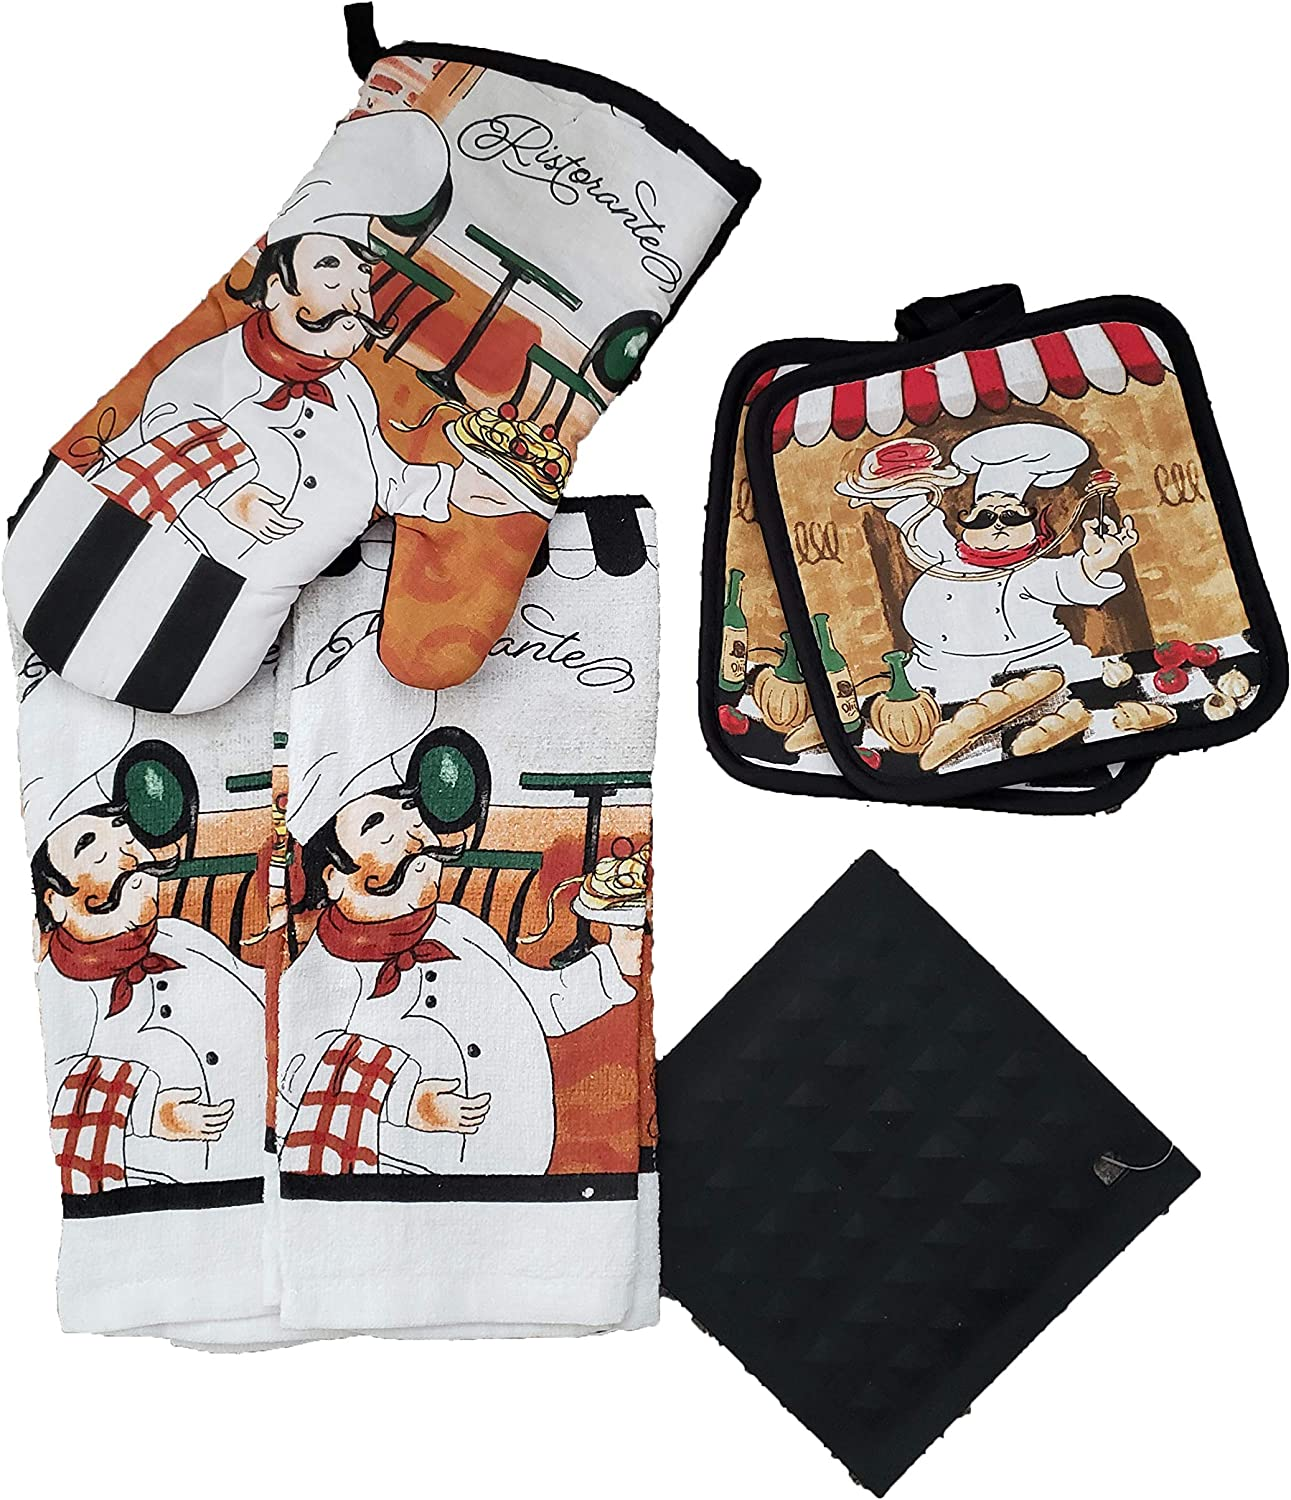 Colorful 5 Piece Kitchen Linen Bundle with 2 Dish Towels, 2 Potholders, and 1 Oven Mitt (Italian Pasta Chef)